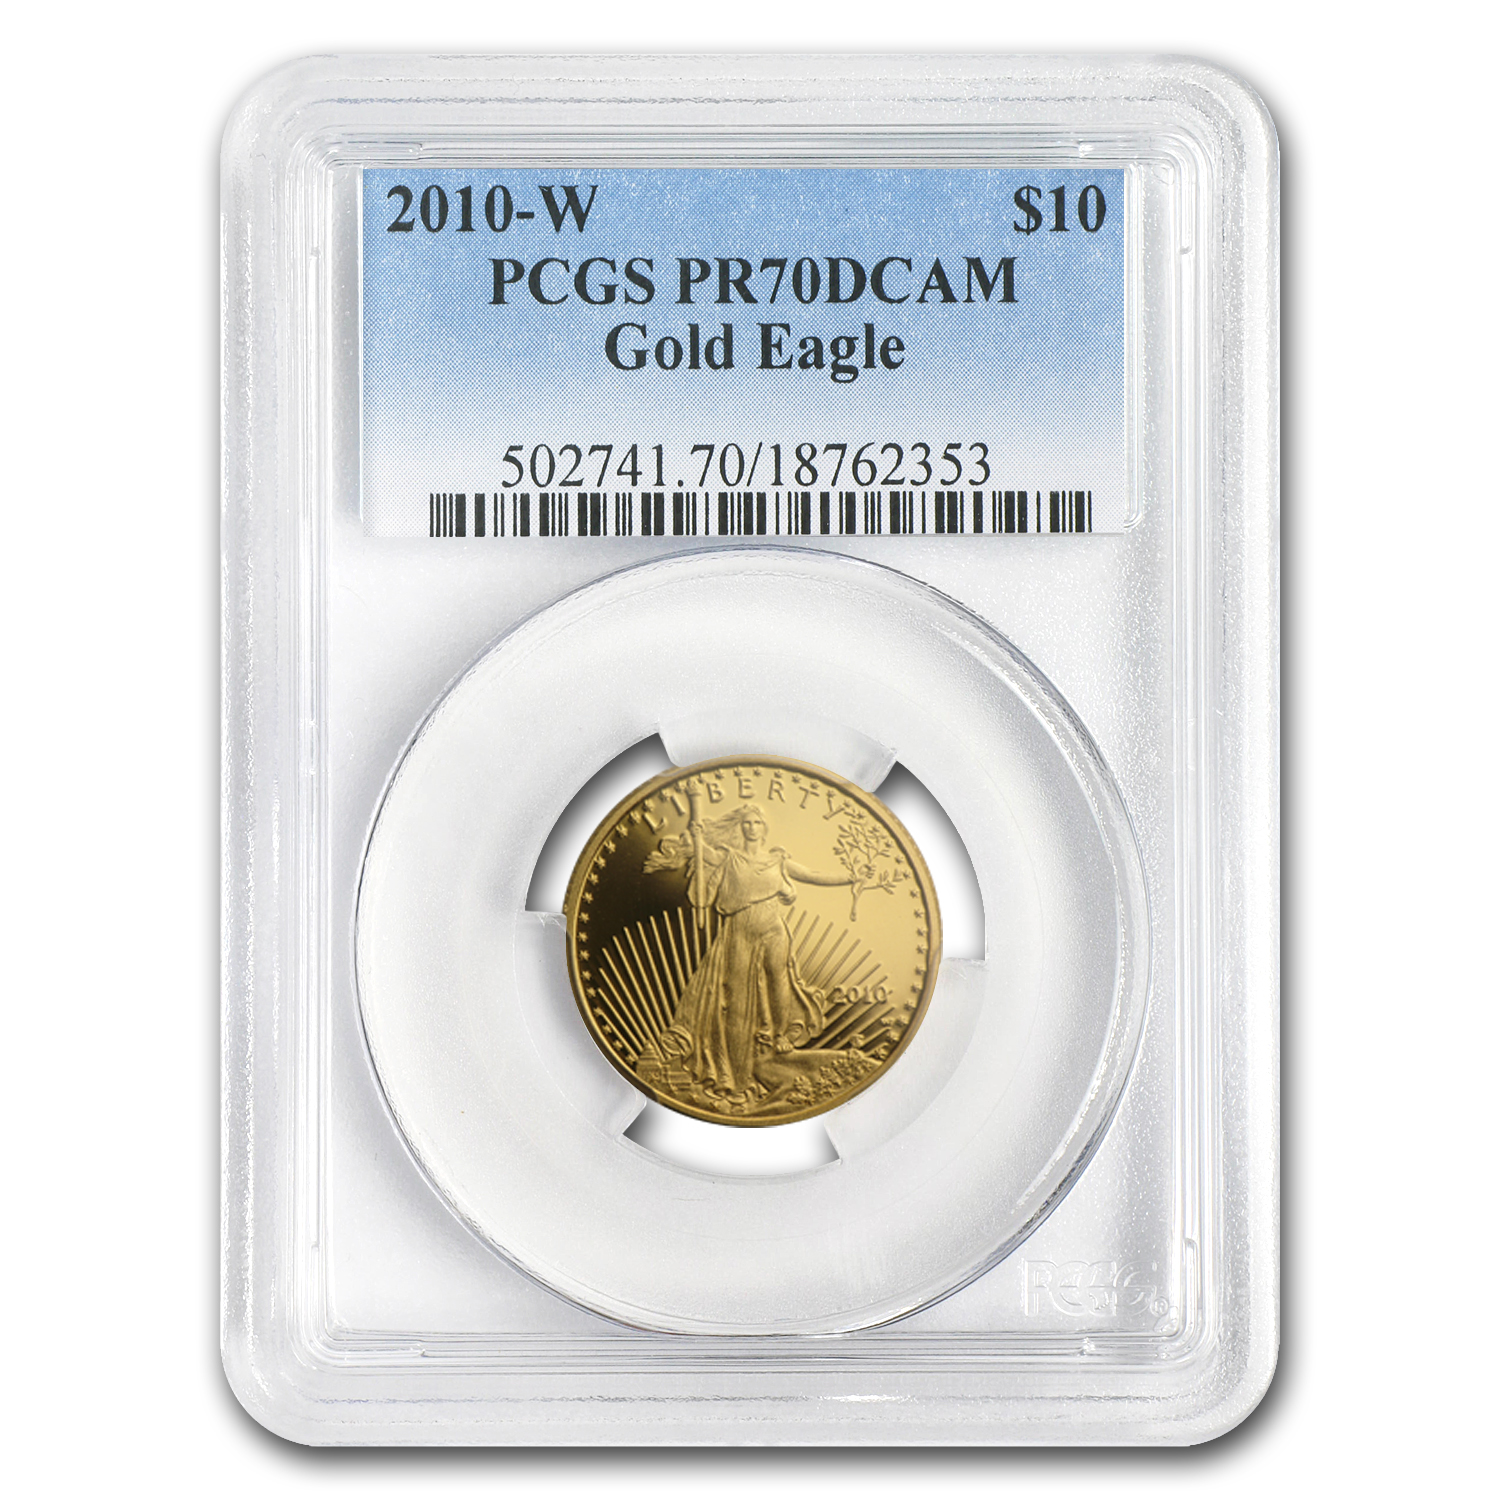 2010-W 1/4 oz Proof Gold American Eagle PR-70 PCGS